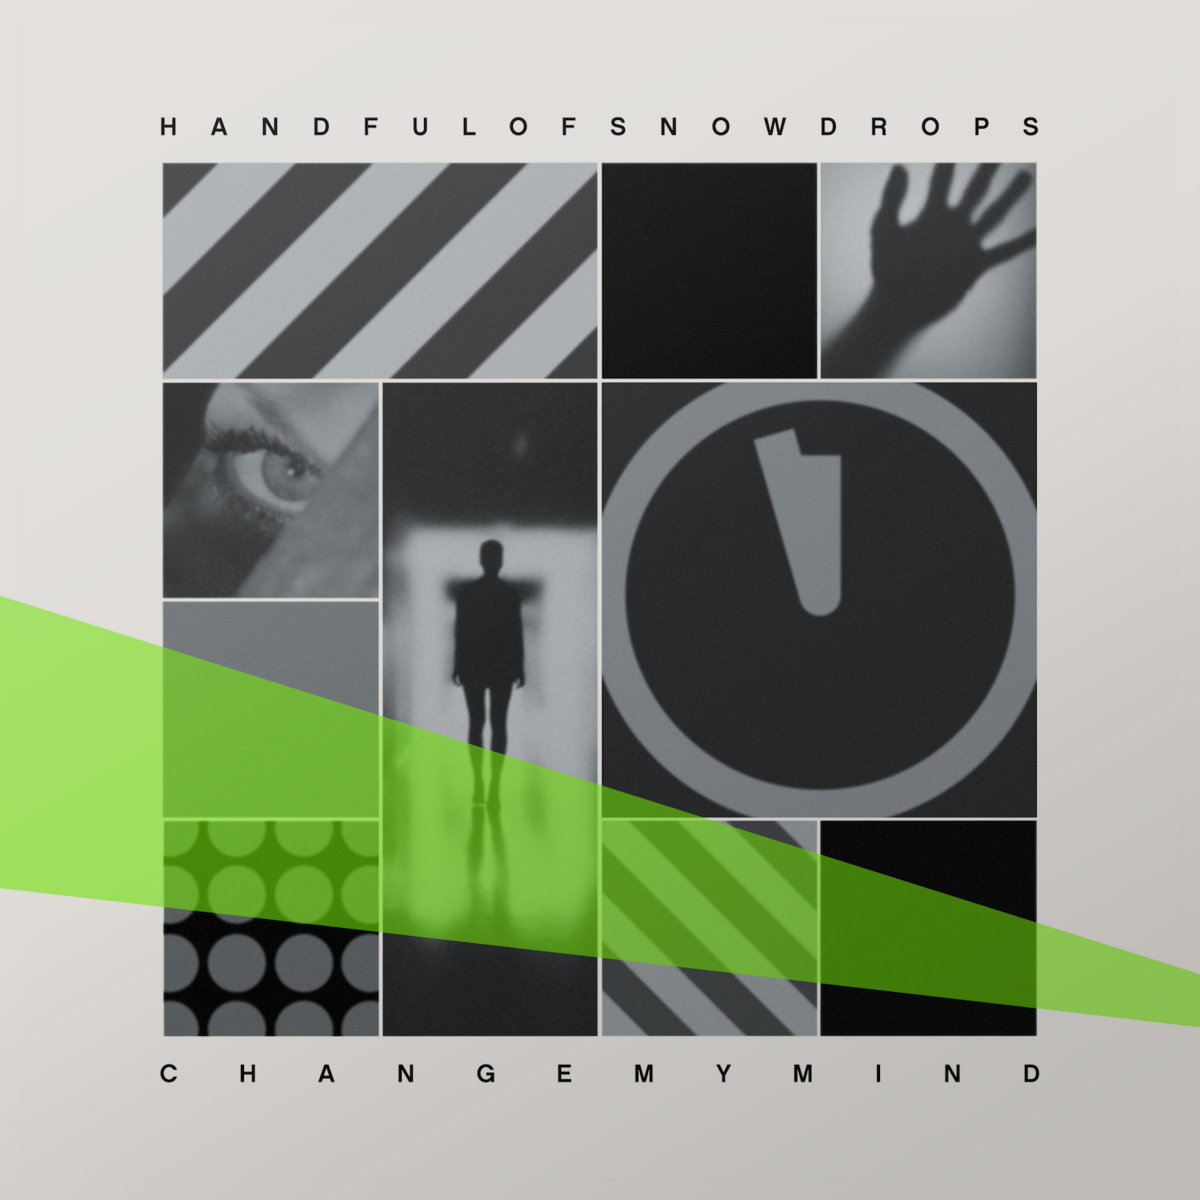 Electro News @ – Handful of Snowdrops – Change My Mind